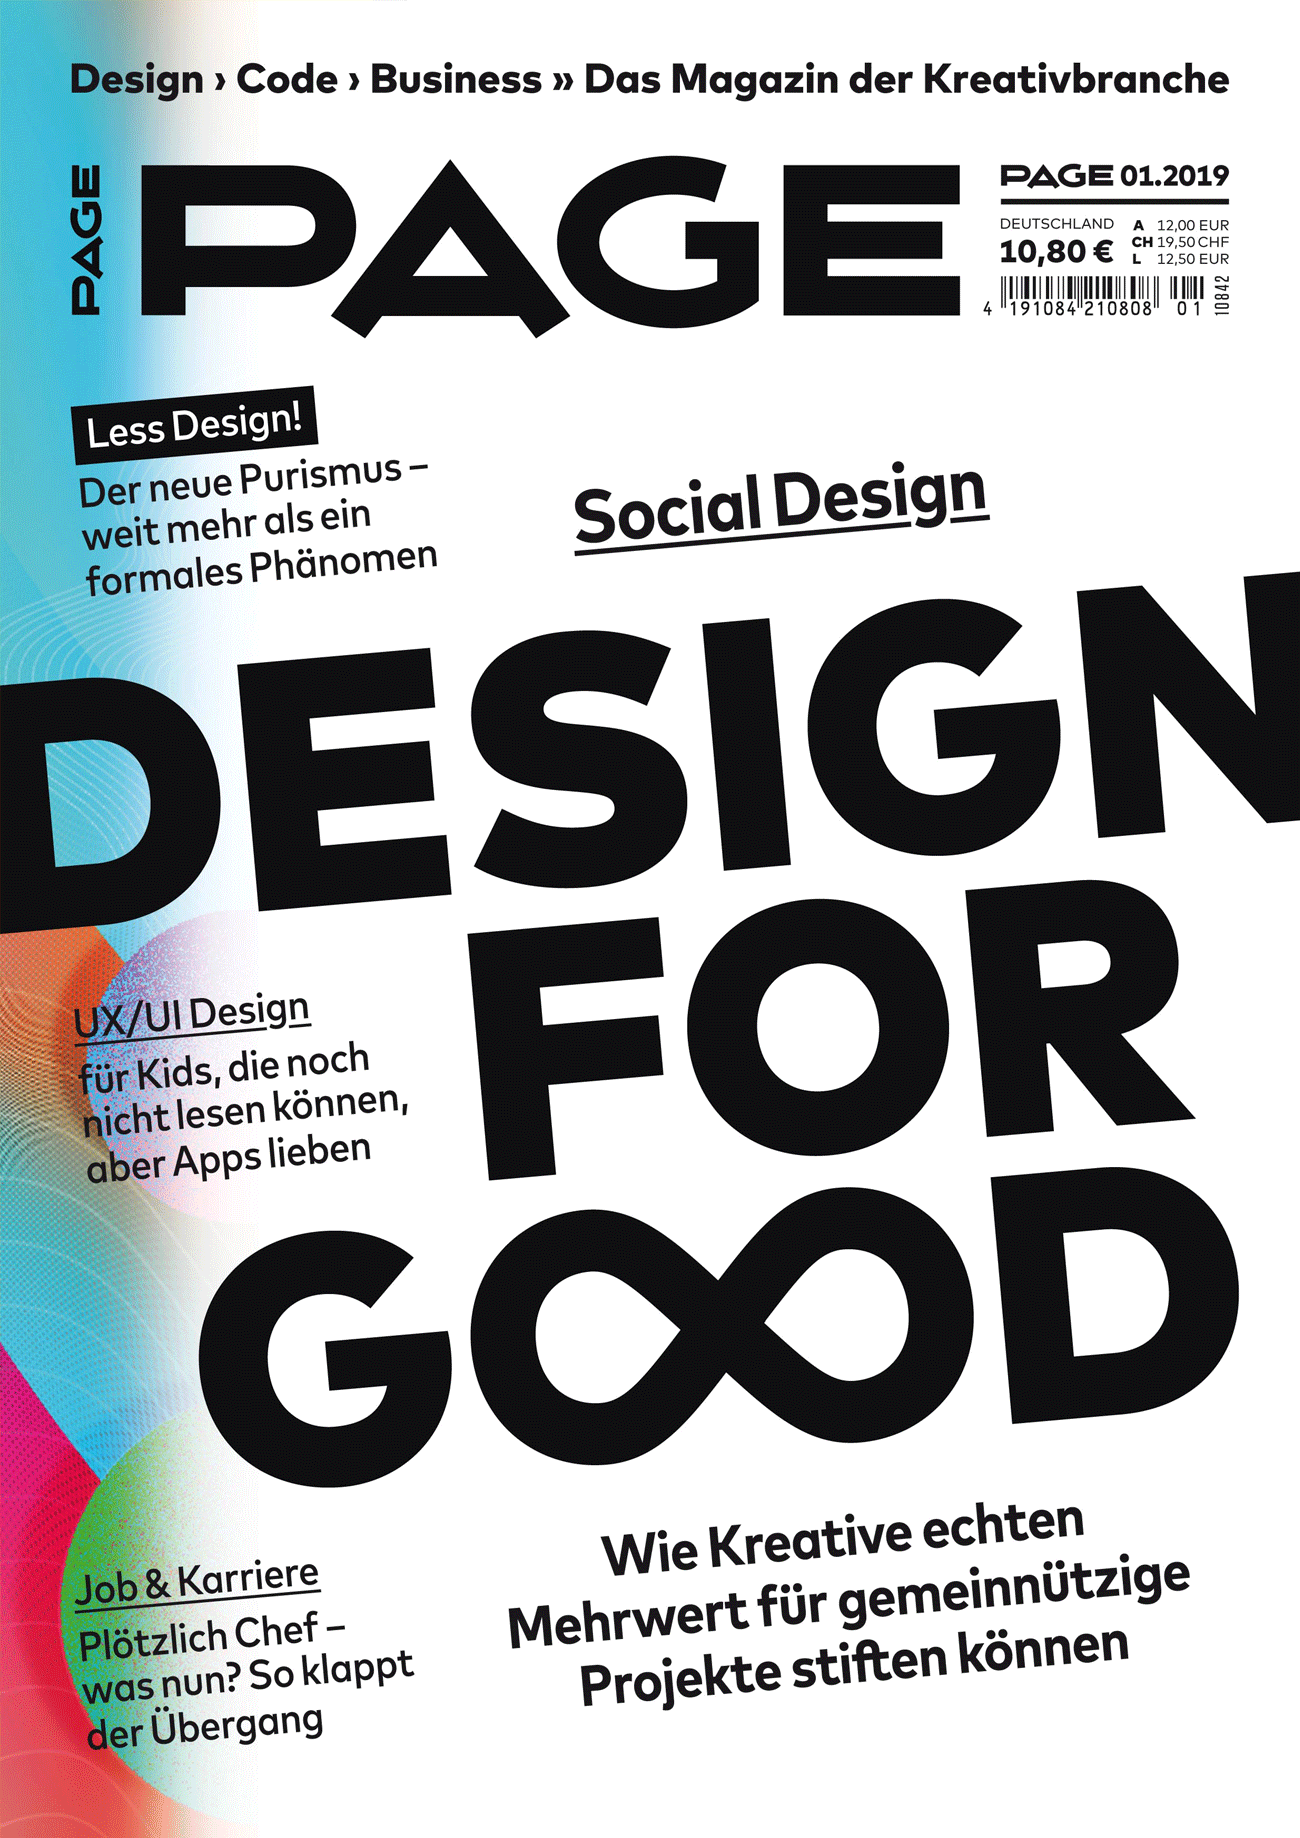 Design for Good, UX/UI für Kids, Less Design, Plötzlich chef